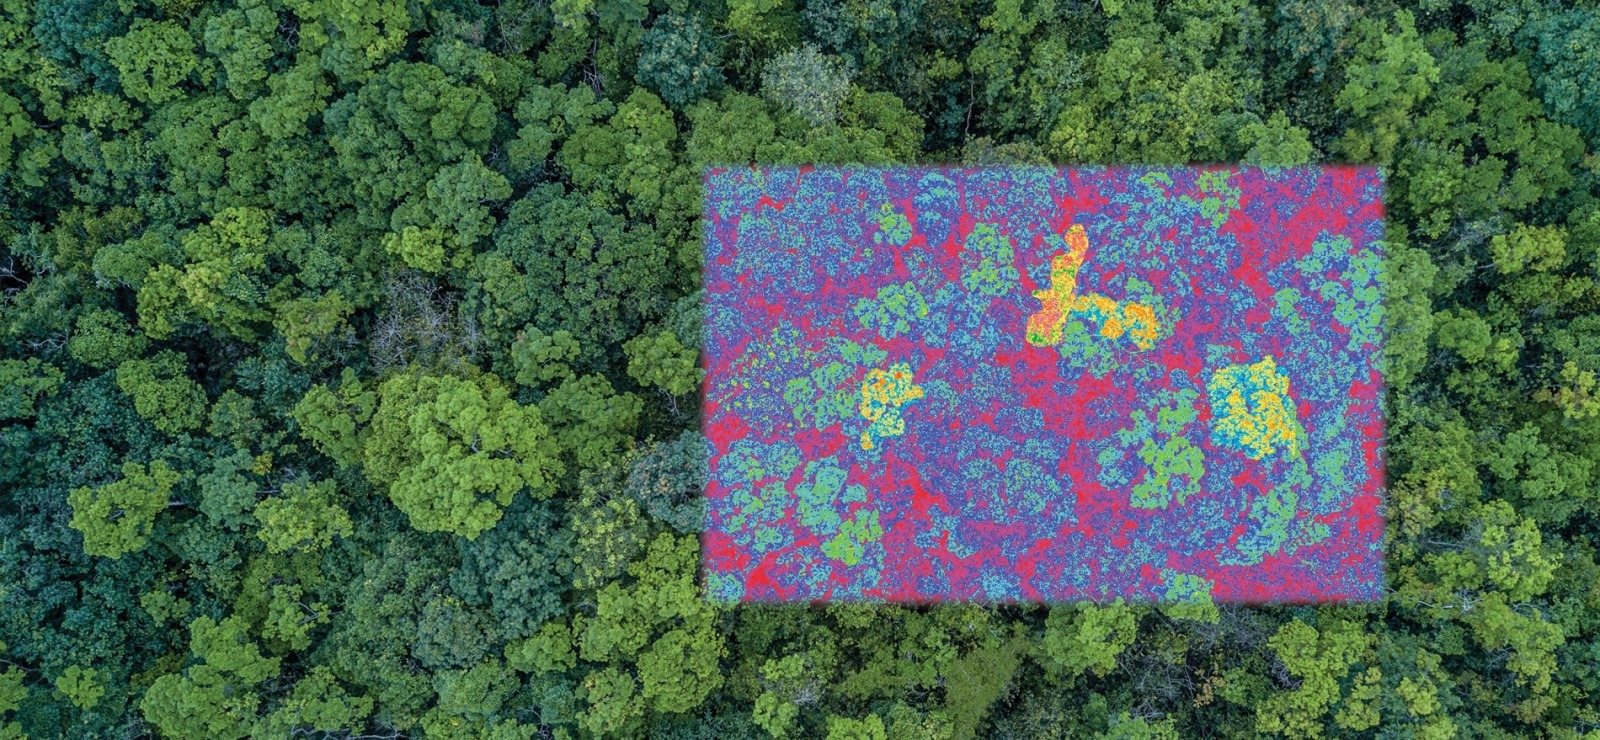 Hyperspectral Remote Sensing of Forest